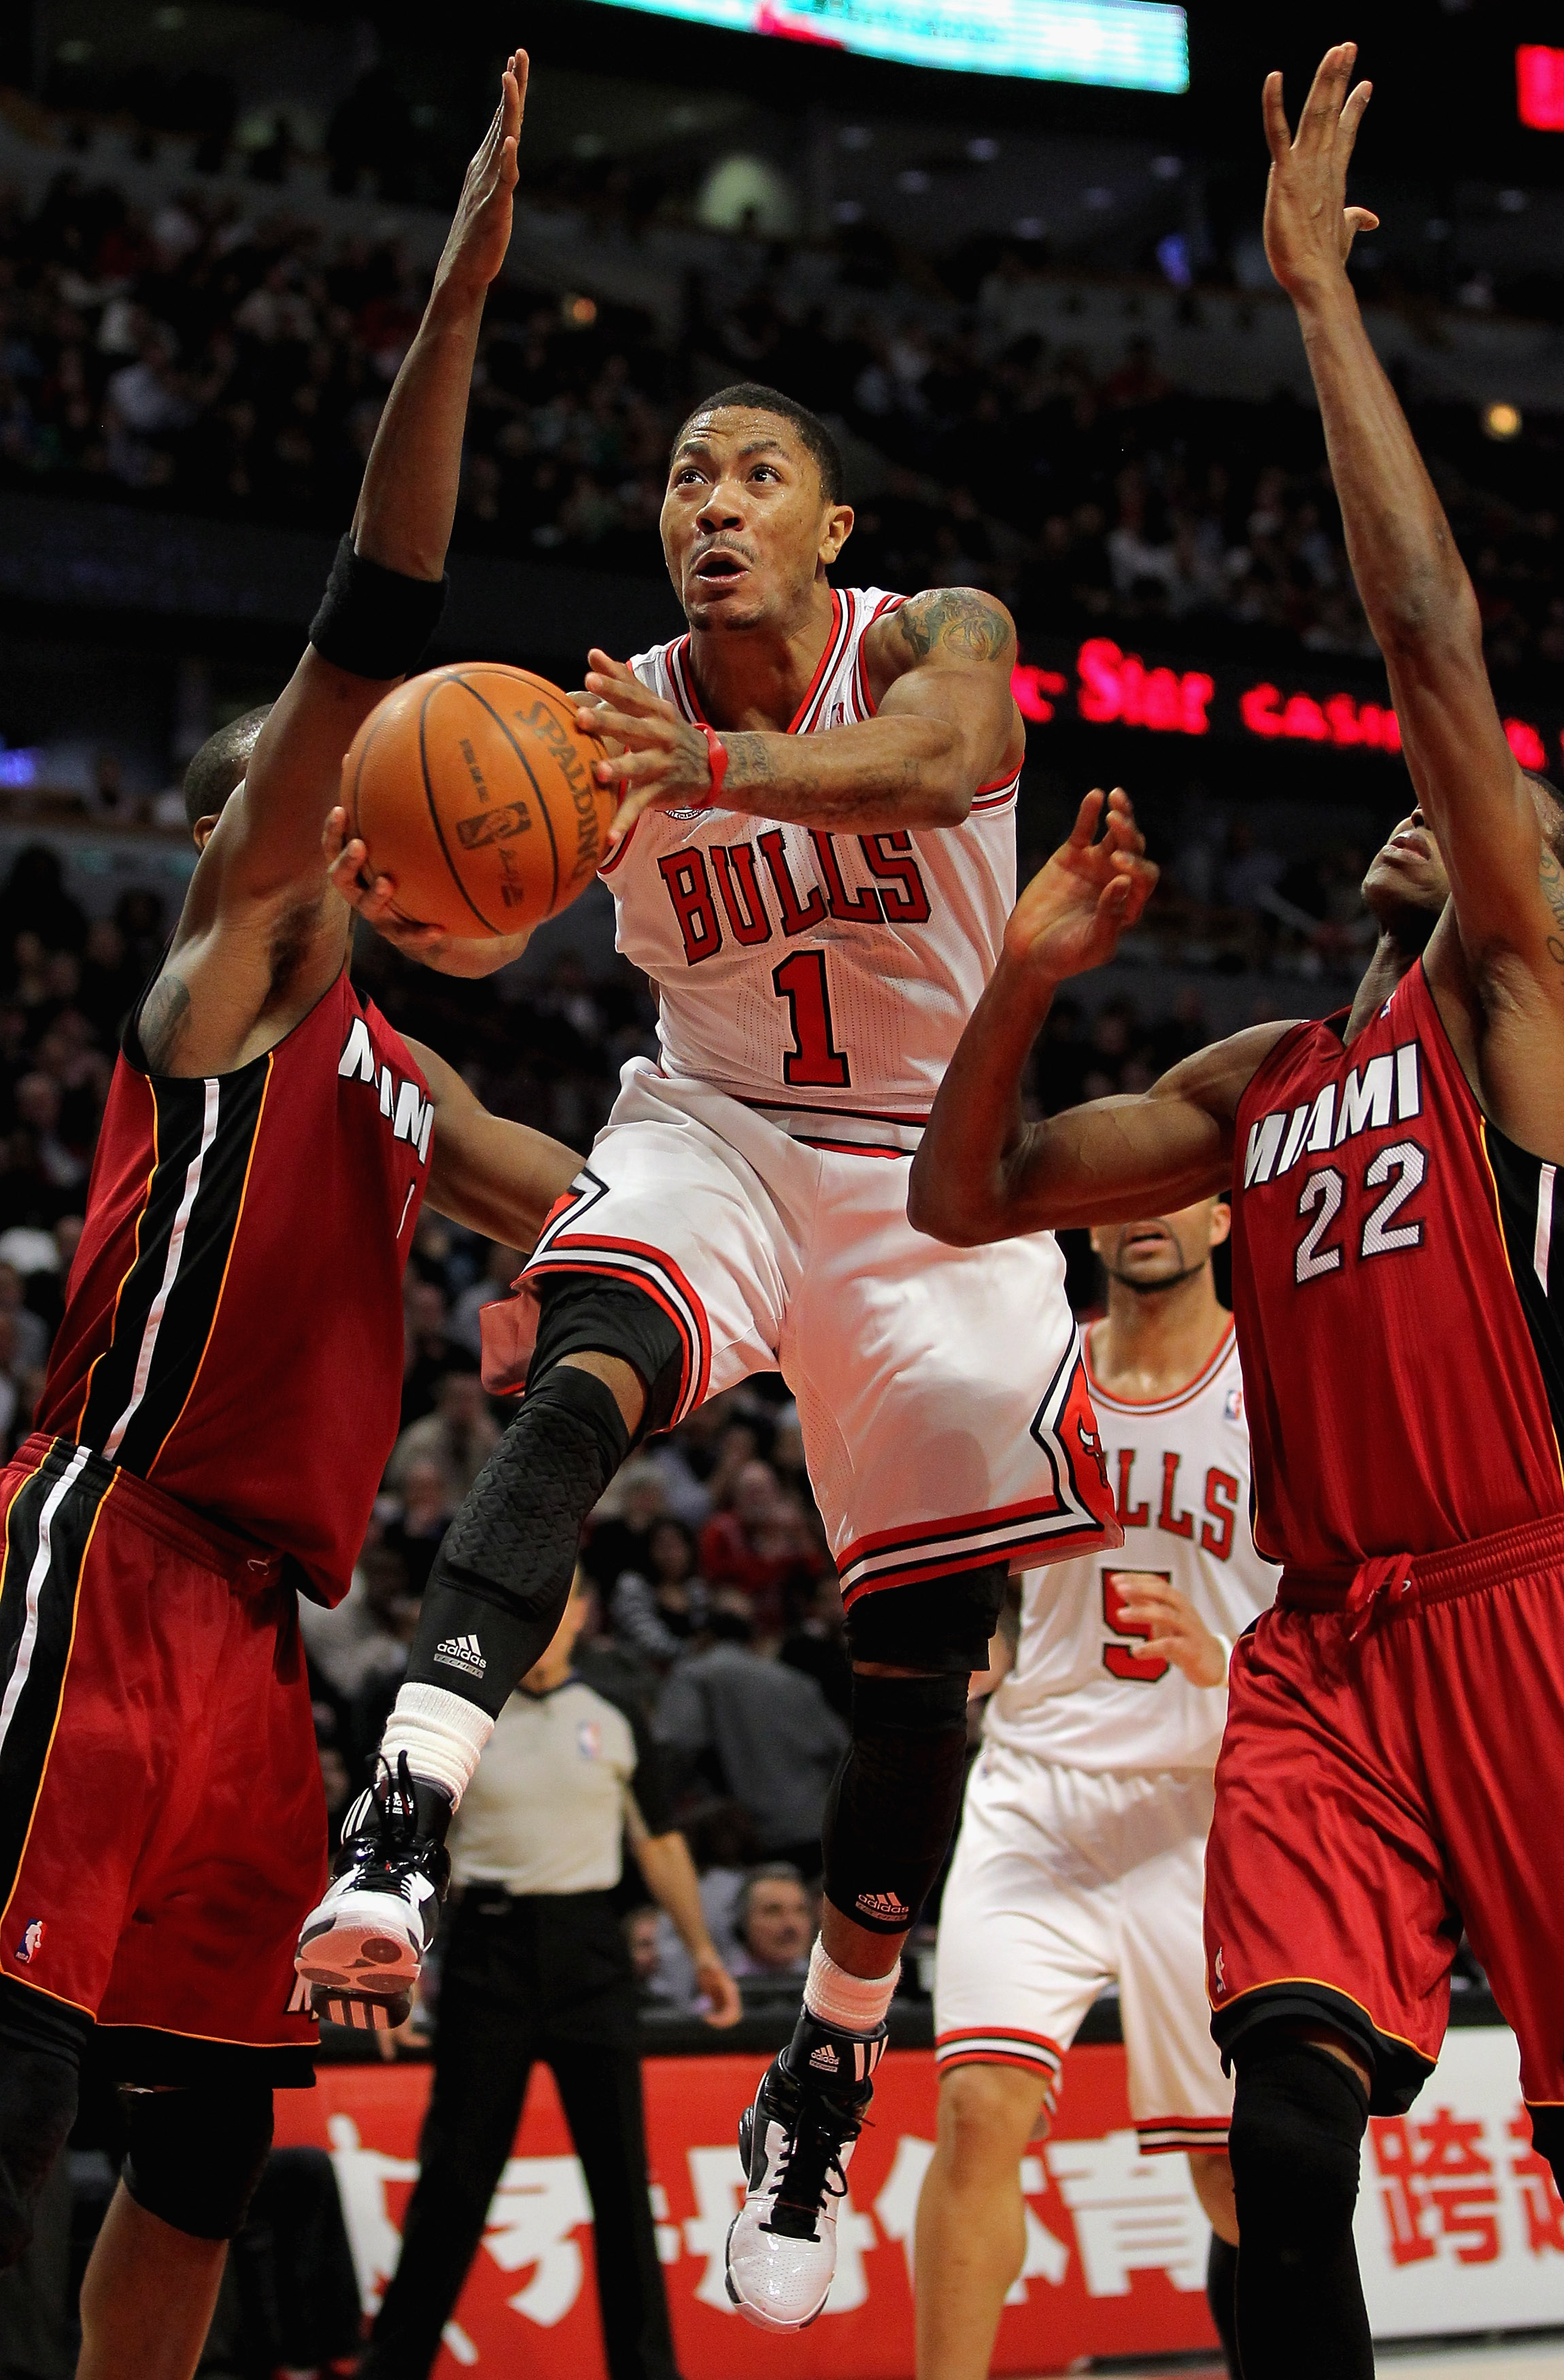 CHICAGO, IL - JANUARY 15:  Derrick Rose #1 of the Chicago Bulls lays up a shot between Chris Bosh #1 and James Jones #22 of the Miami Heat at the United Center on January 15, 2011 in Chicago, Illinois. NOTE TO USER: User expressly acknowledges and agrees